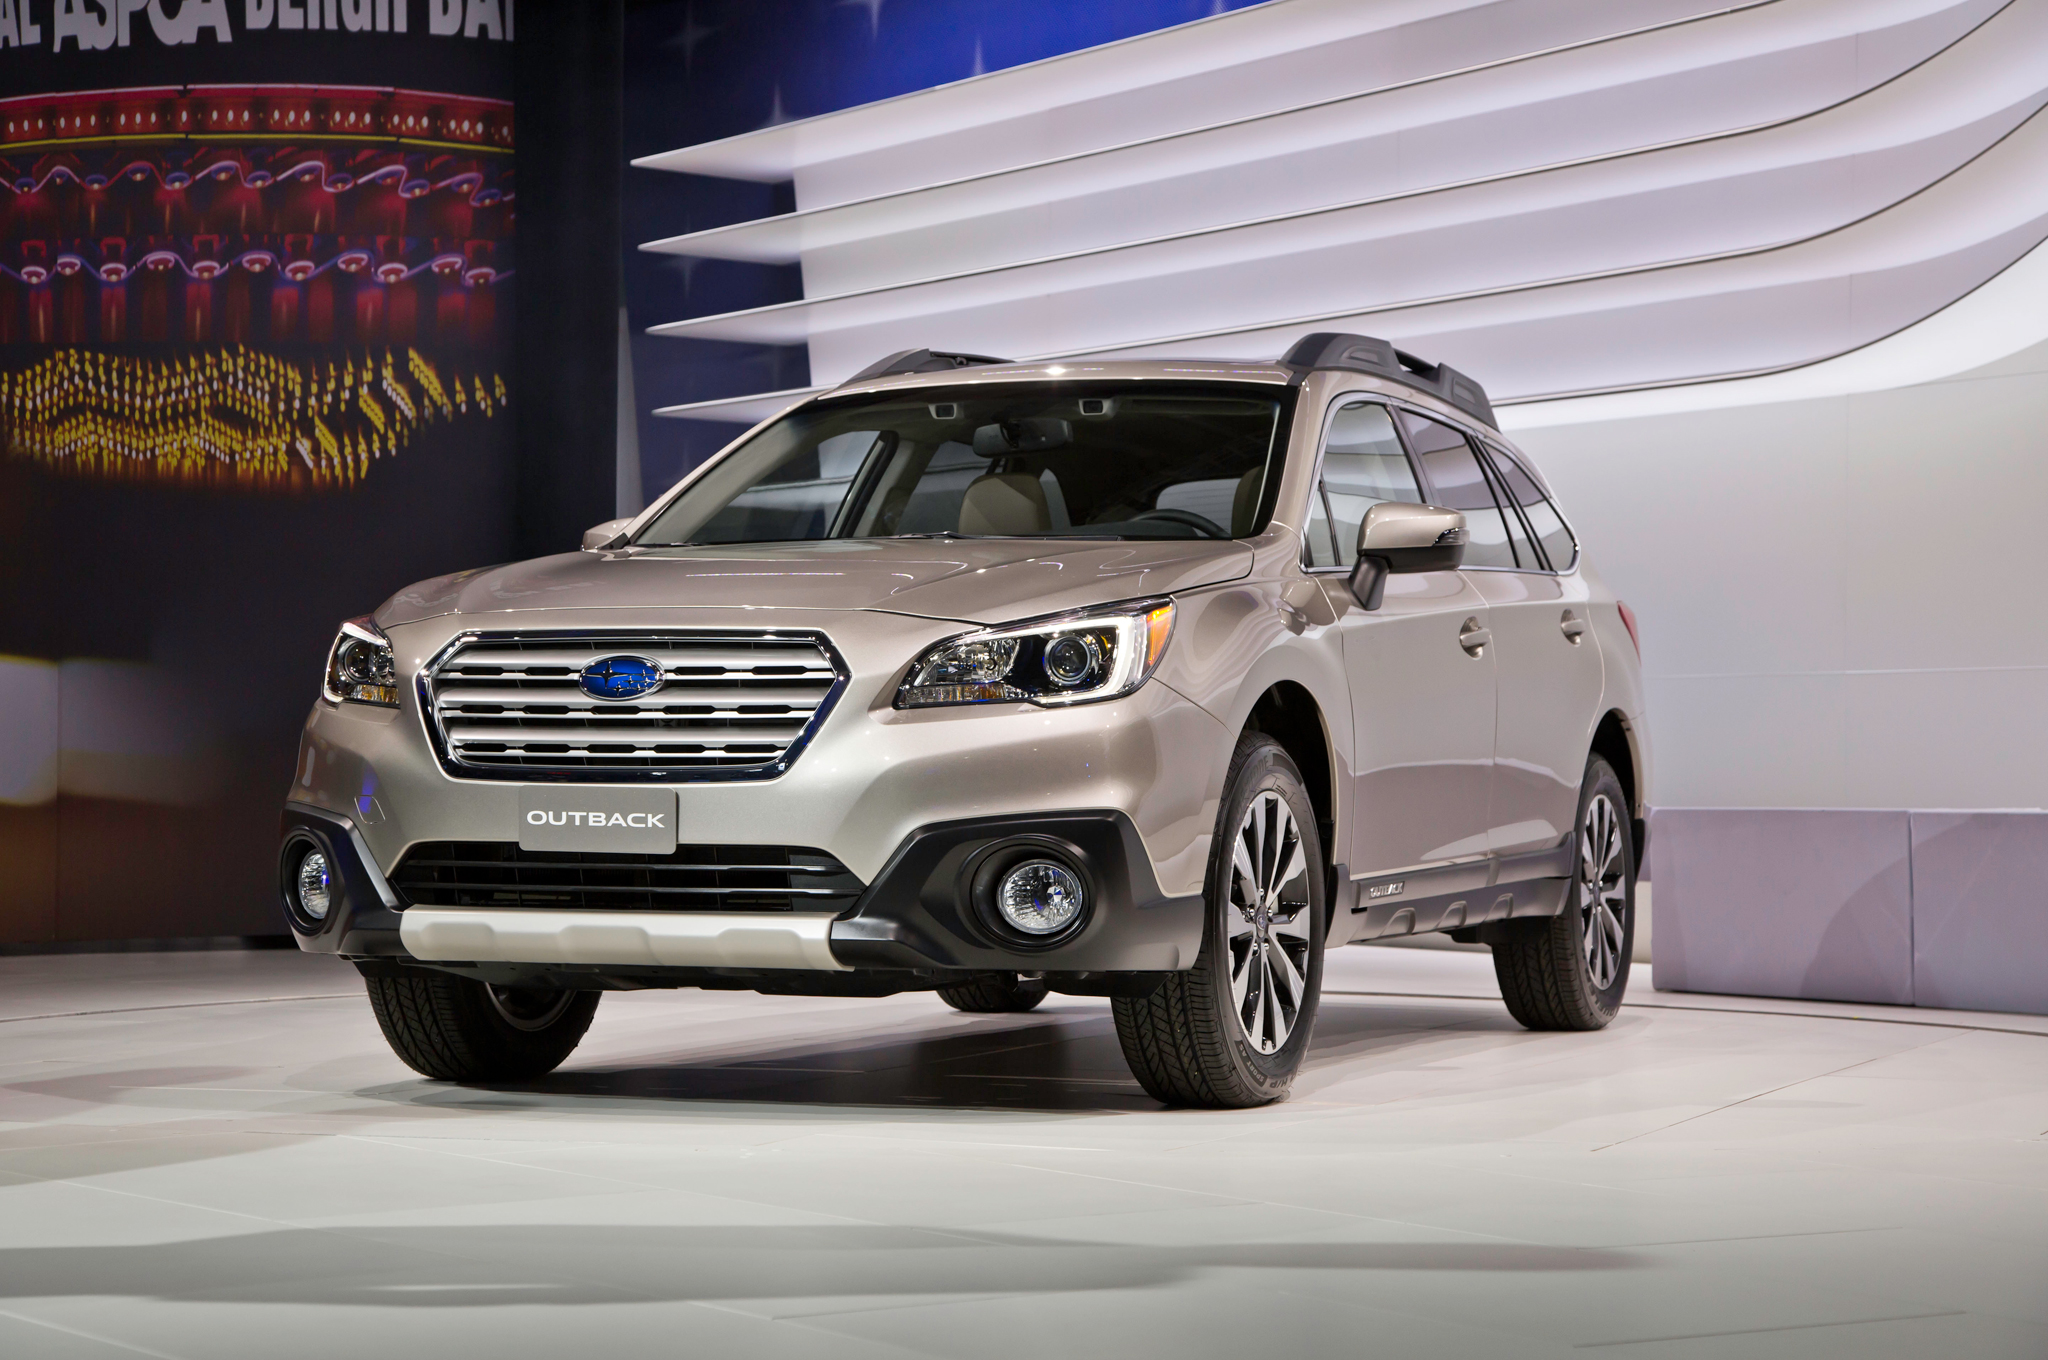 2015 Subaru Outback Front Side Exterior